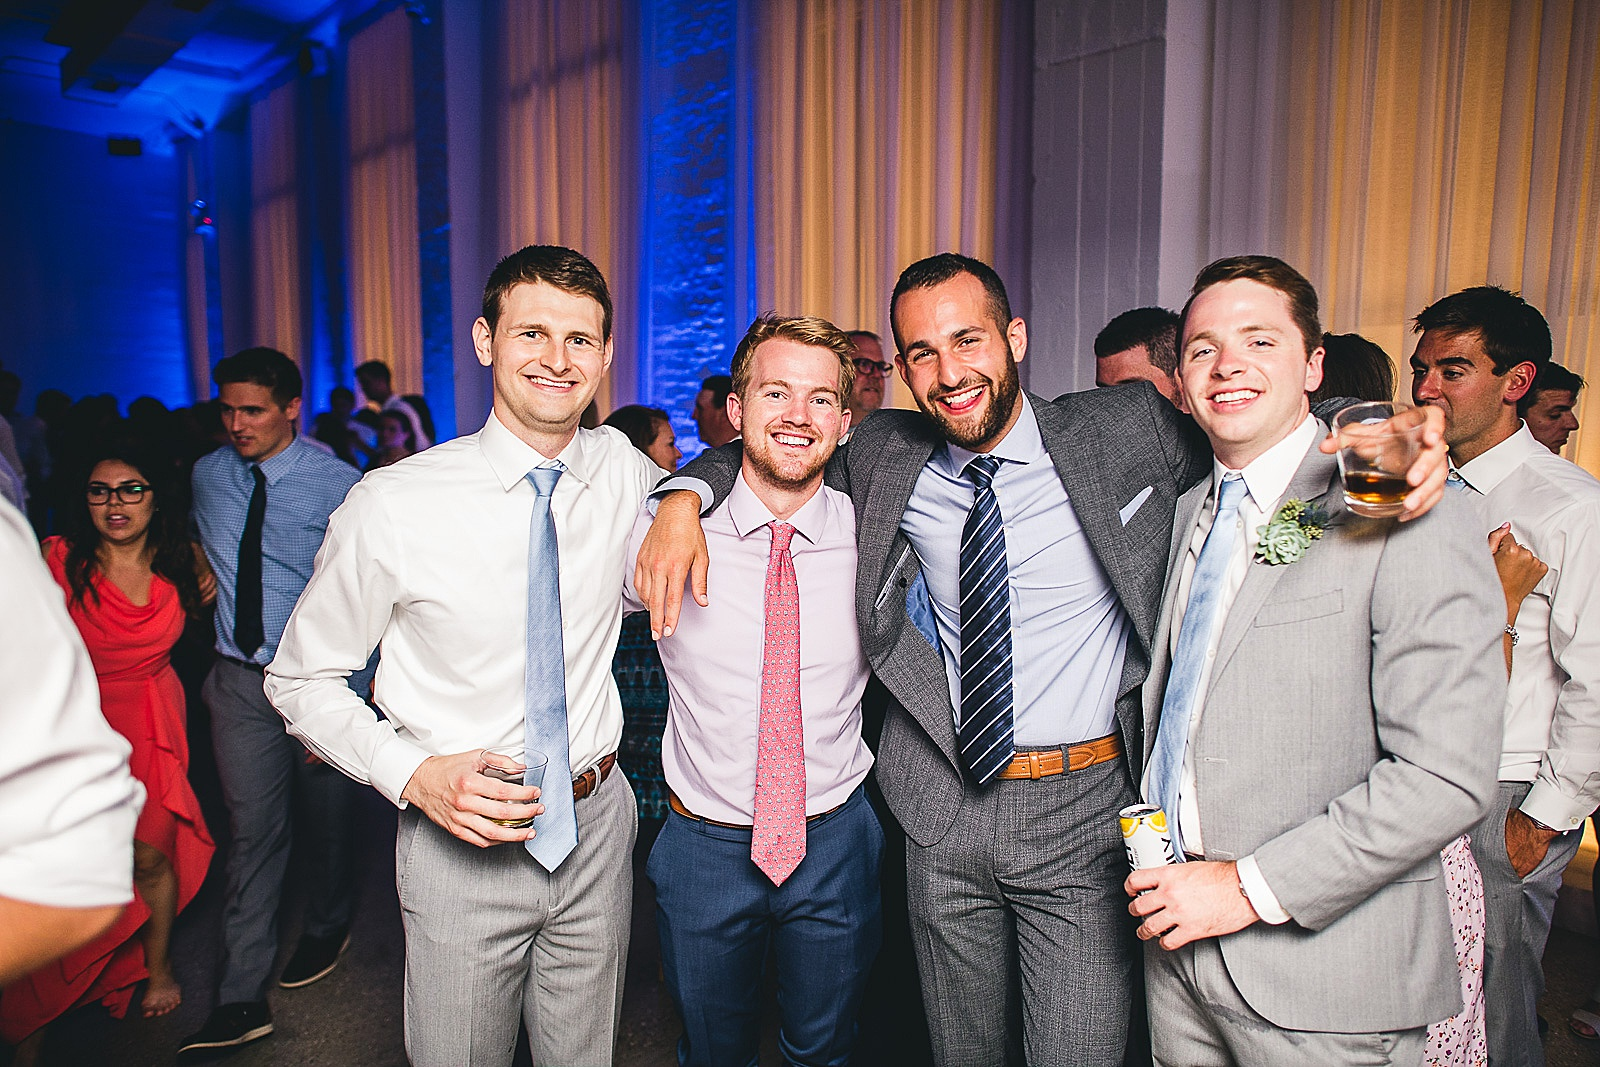 58 fun guys photo - Audrey + Jake's Beautiful Chicago Wedding at Chez